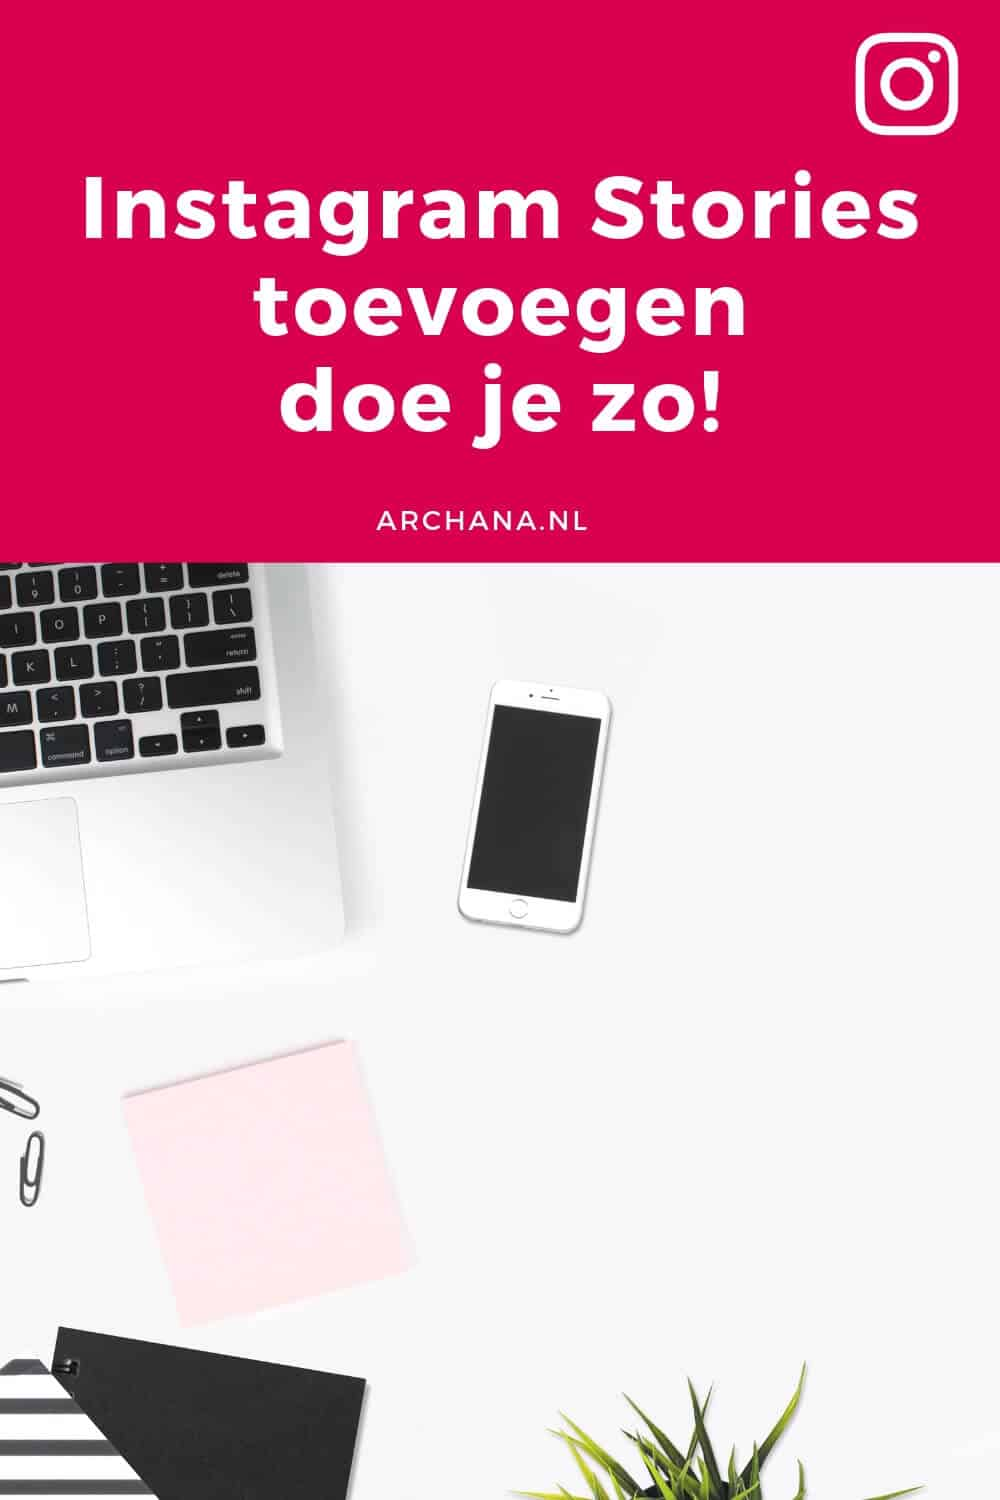 Instagram Stories toevoegen doe je zo! | ARCHANA.NL #instagramtips #instagrammarketing